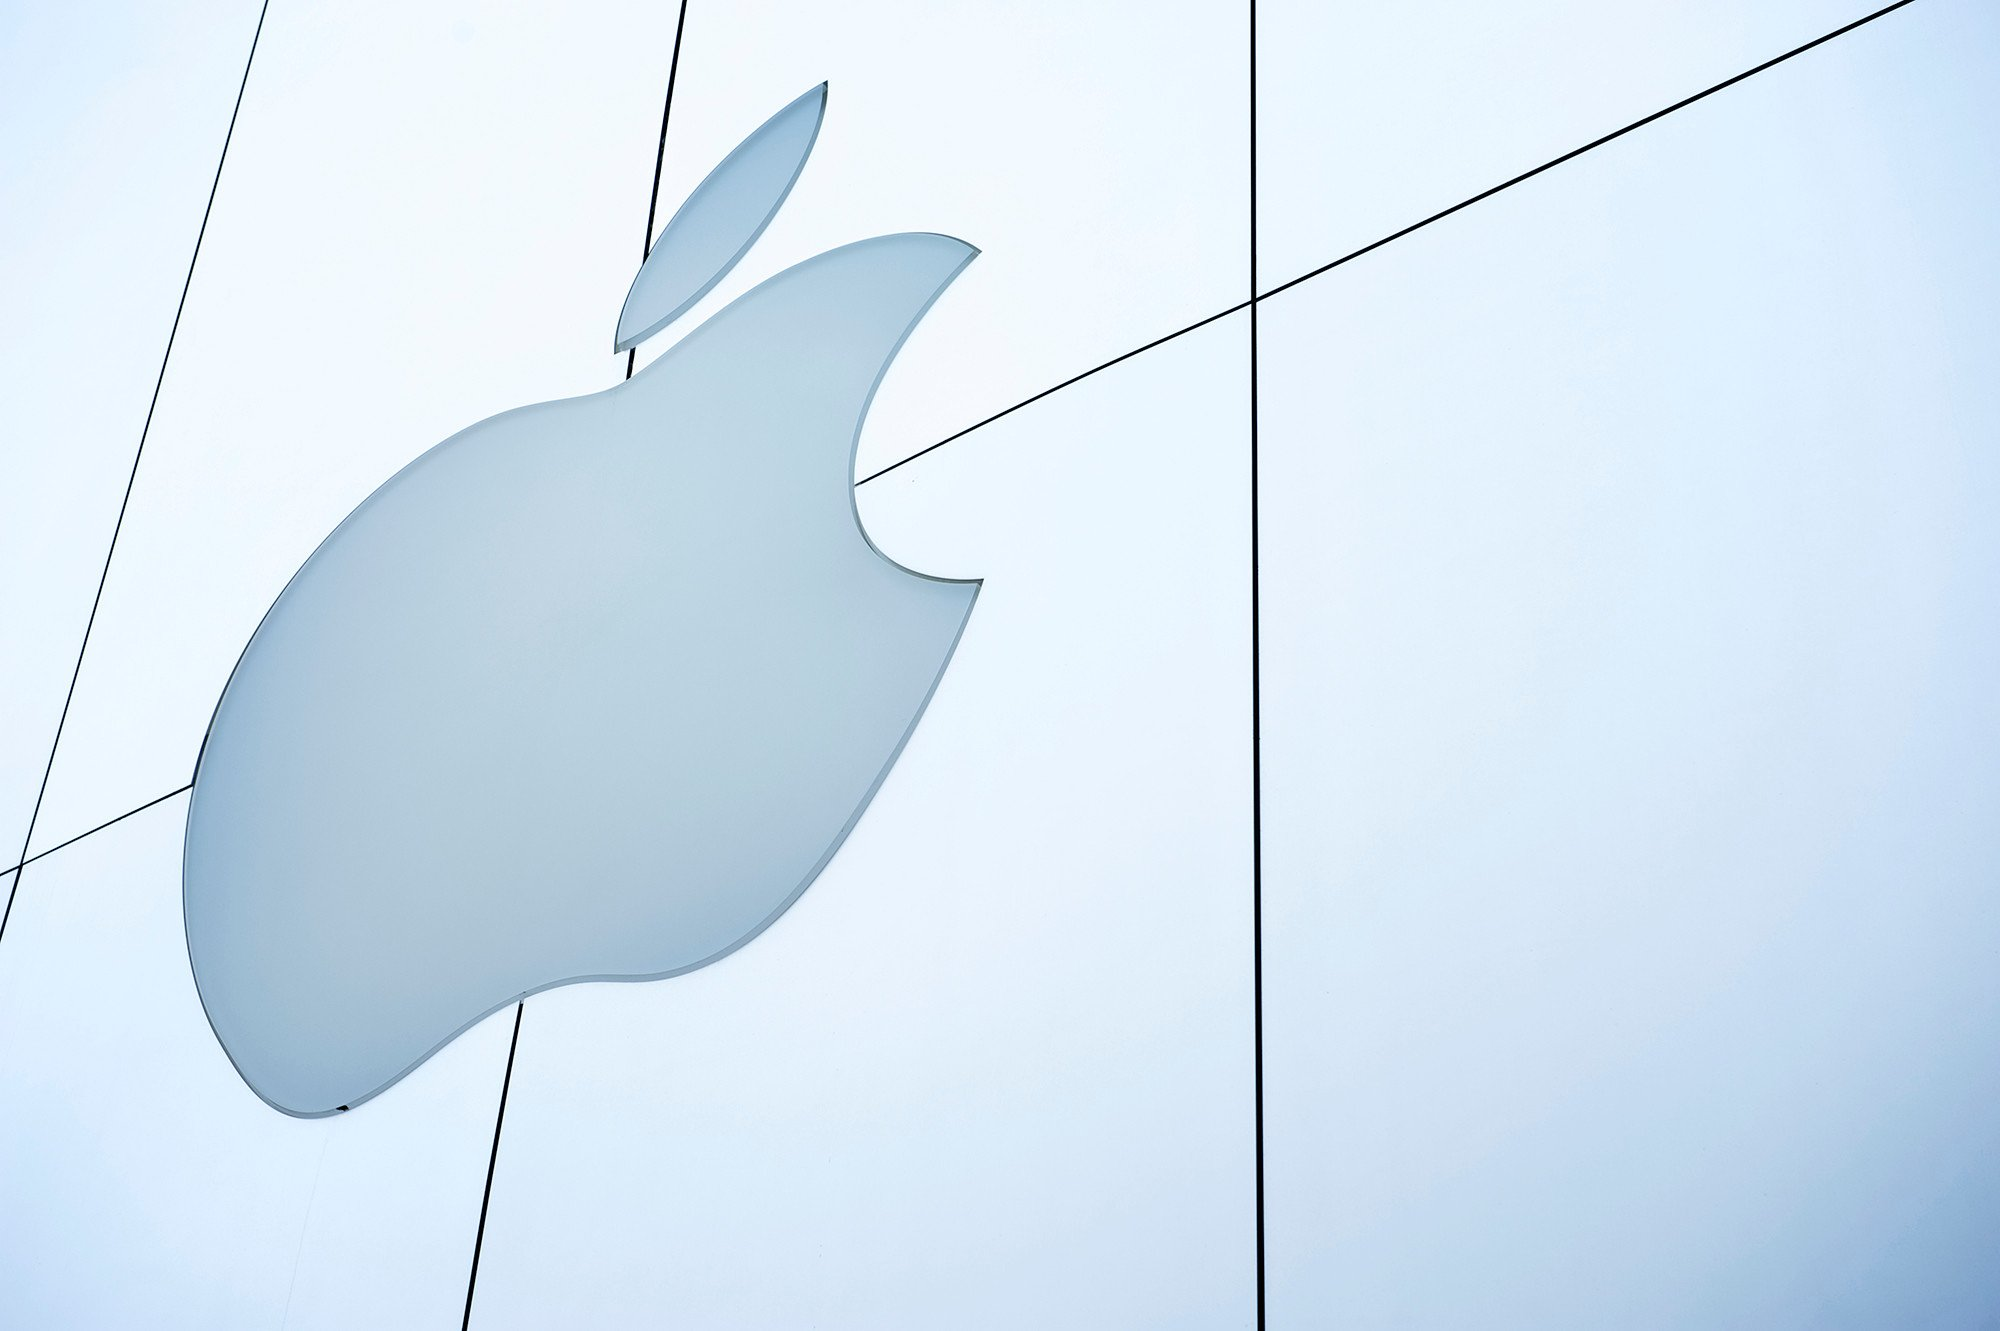 FBI forensic examiner calls Apple 'jerks' for security efforts